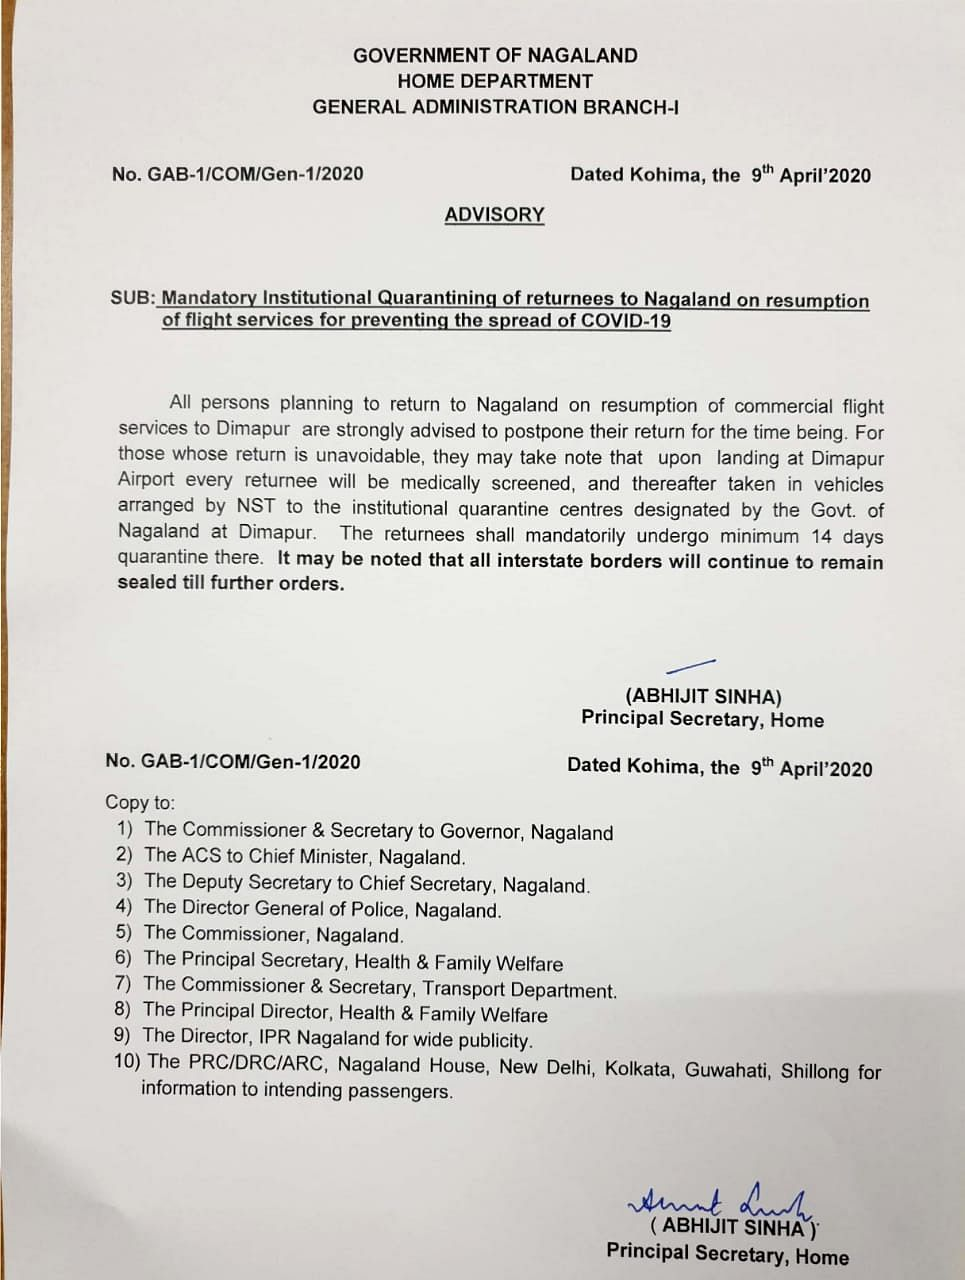 The advisory that was isuued by the home department of Nagaland